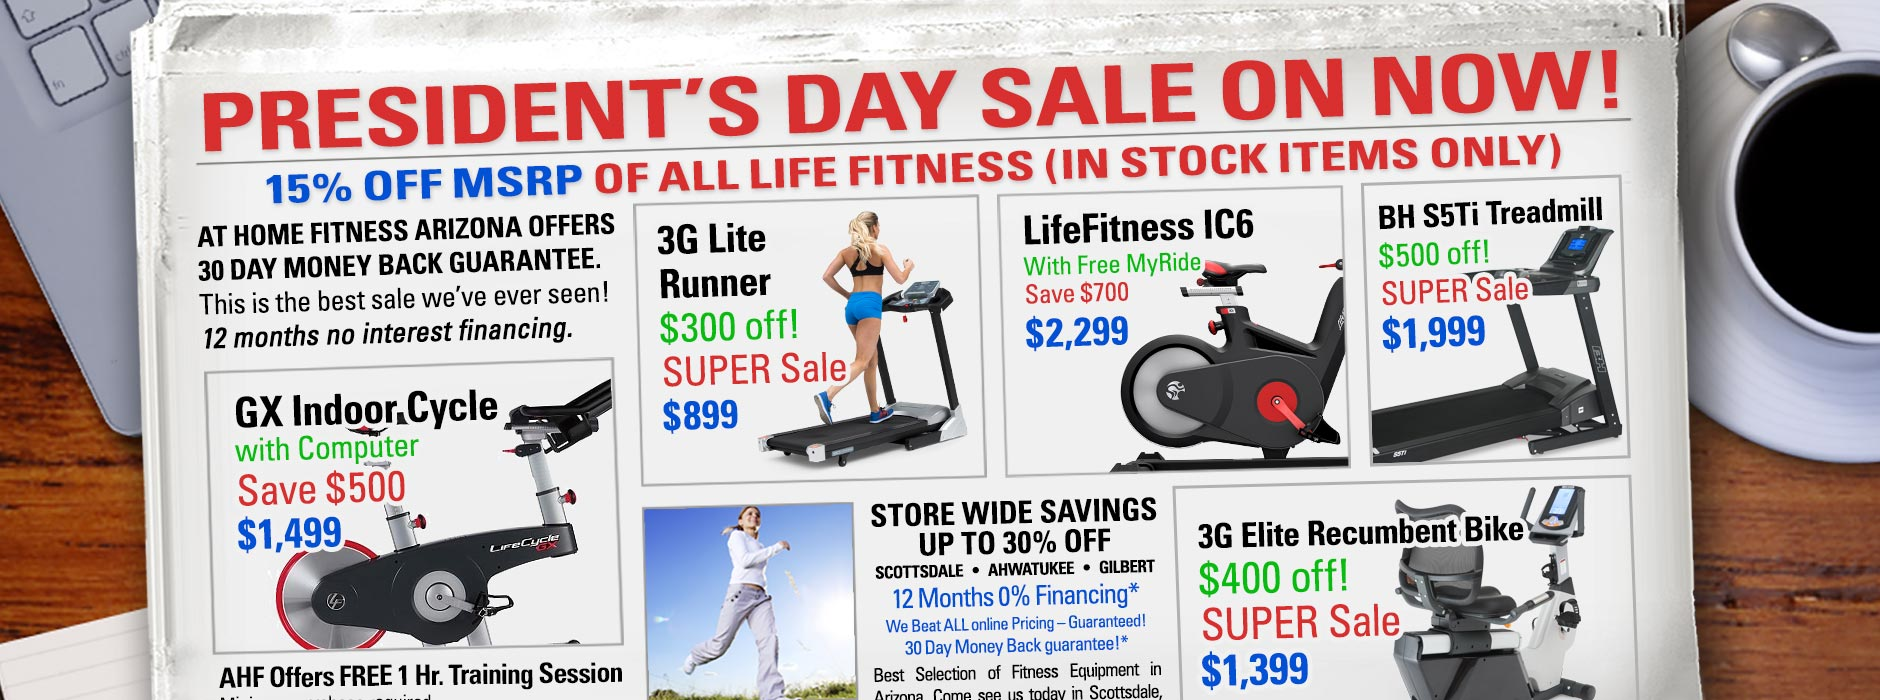 2018 Presidents Day Sale At Home Fitness